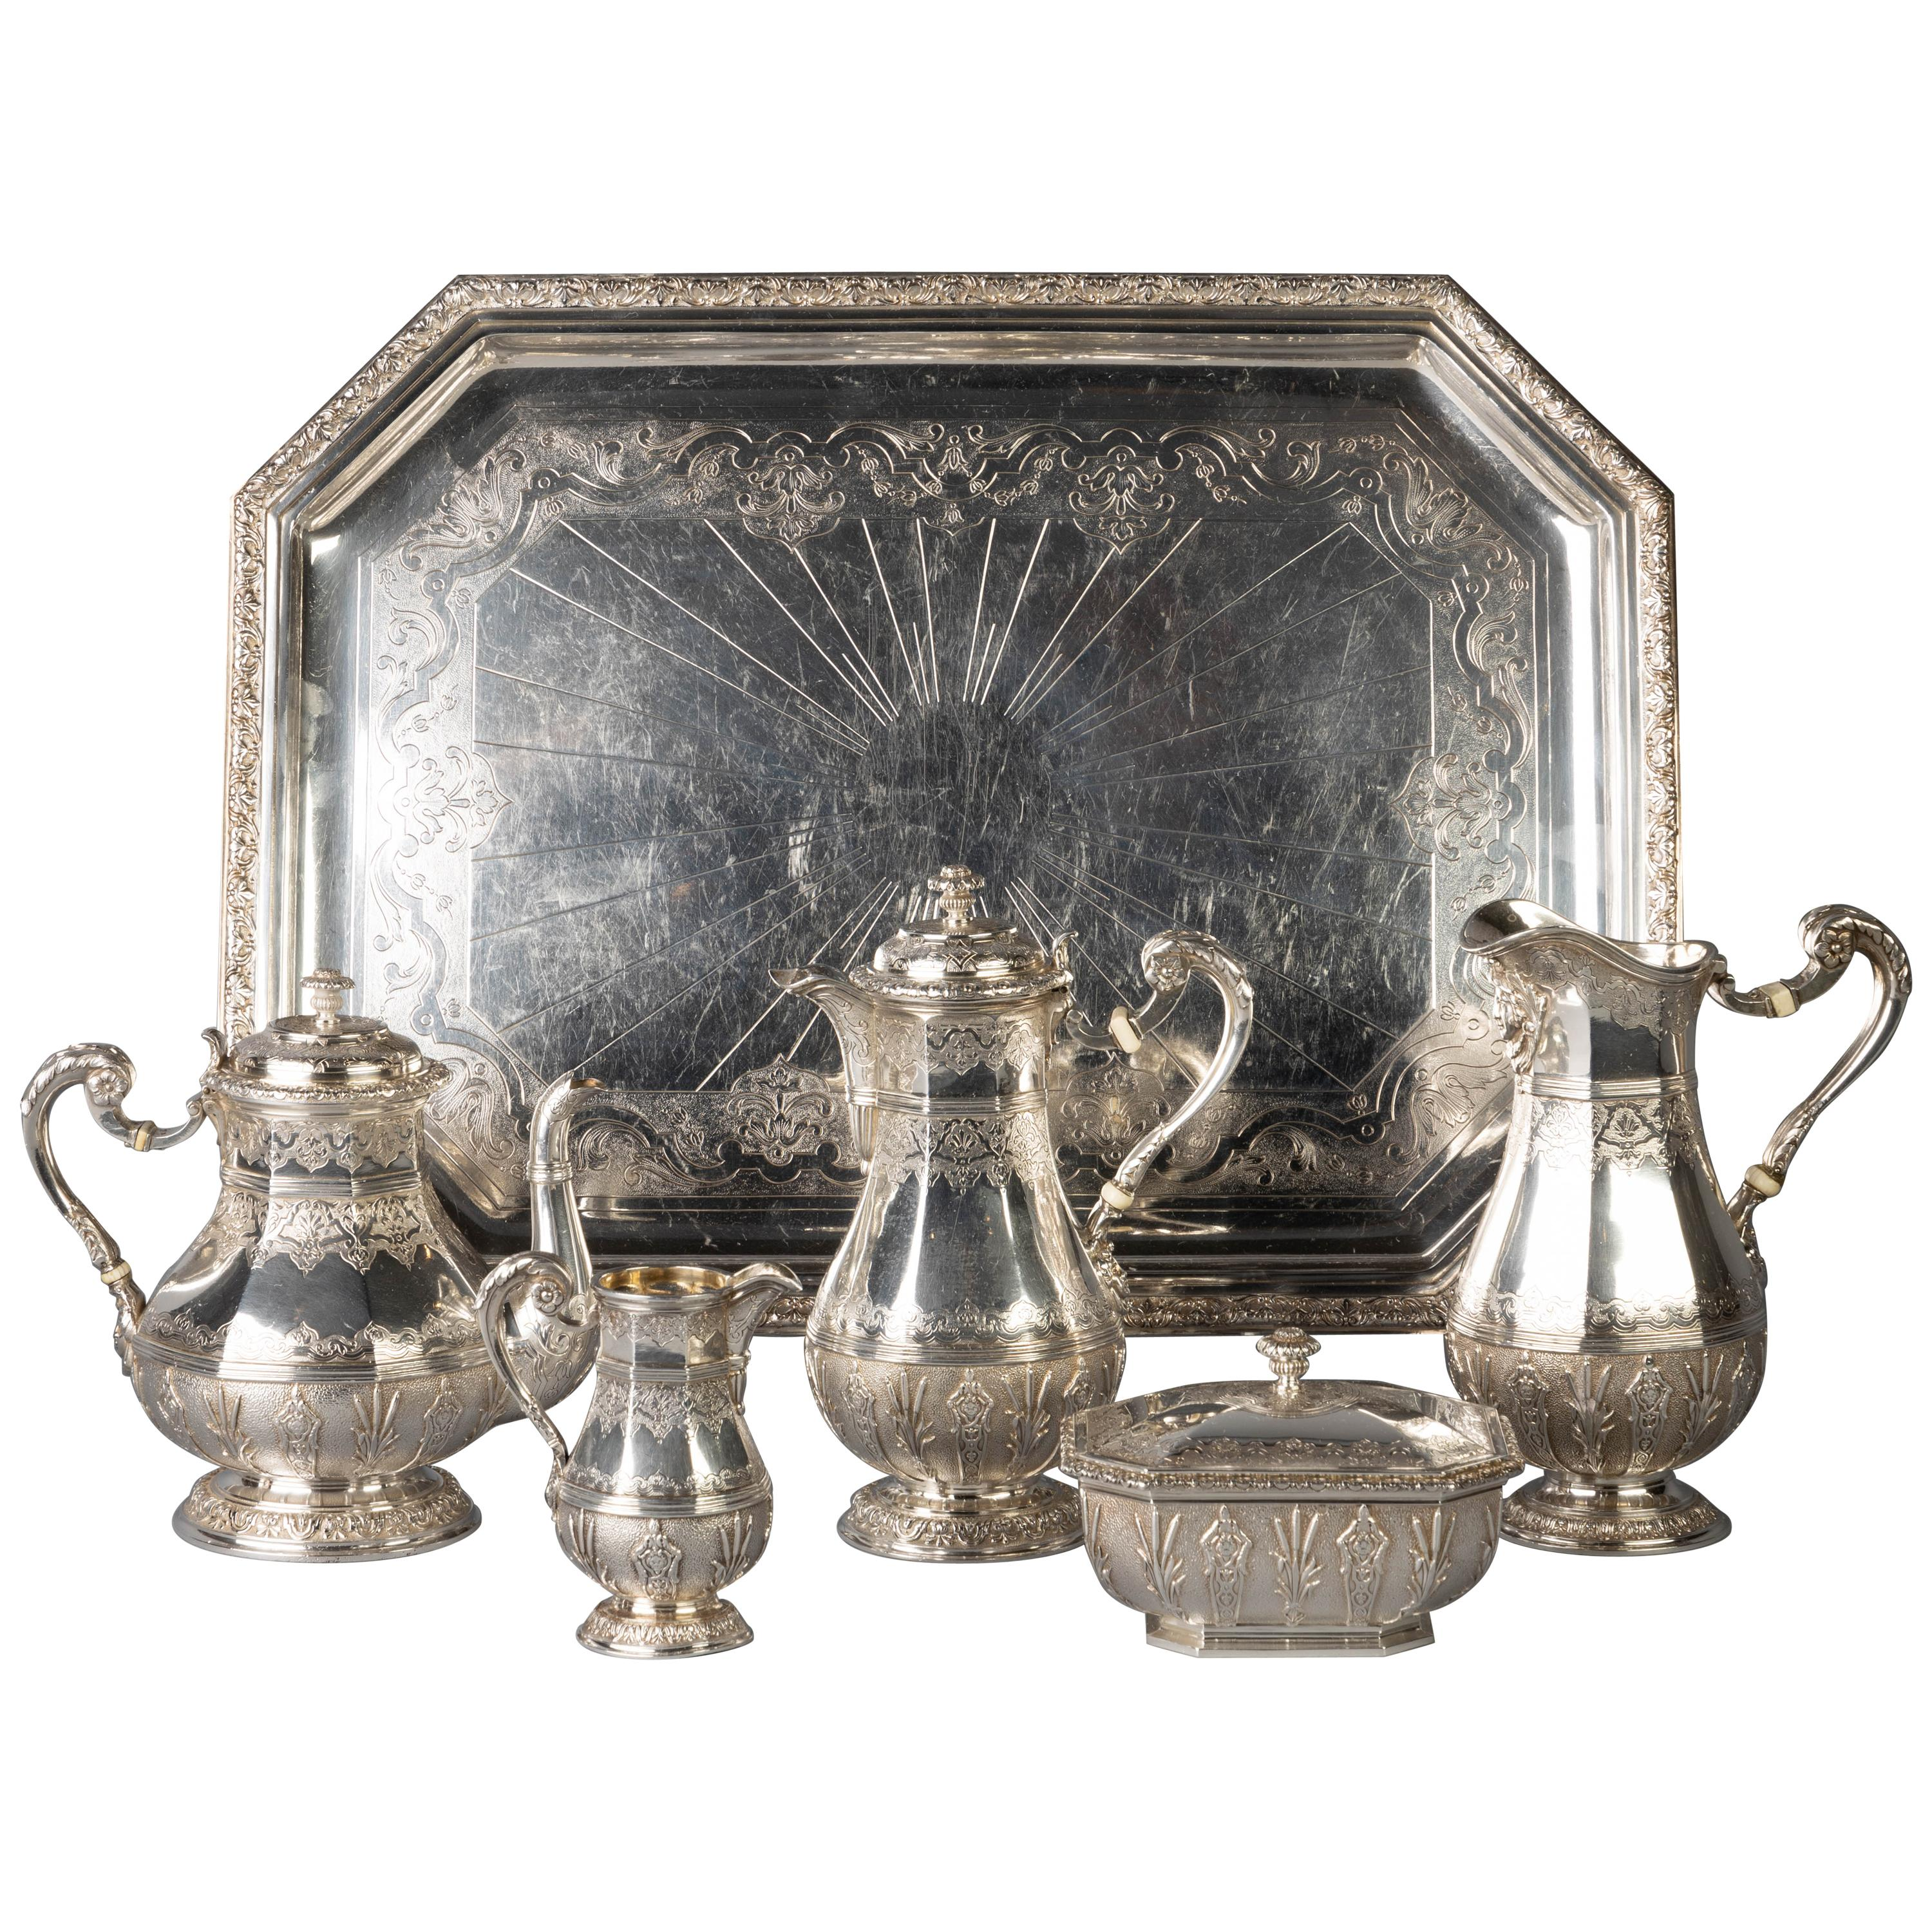 French Silver Five Piece Tea Service, Cardeilhac and Co., circa 1875